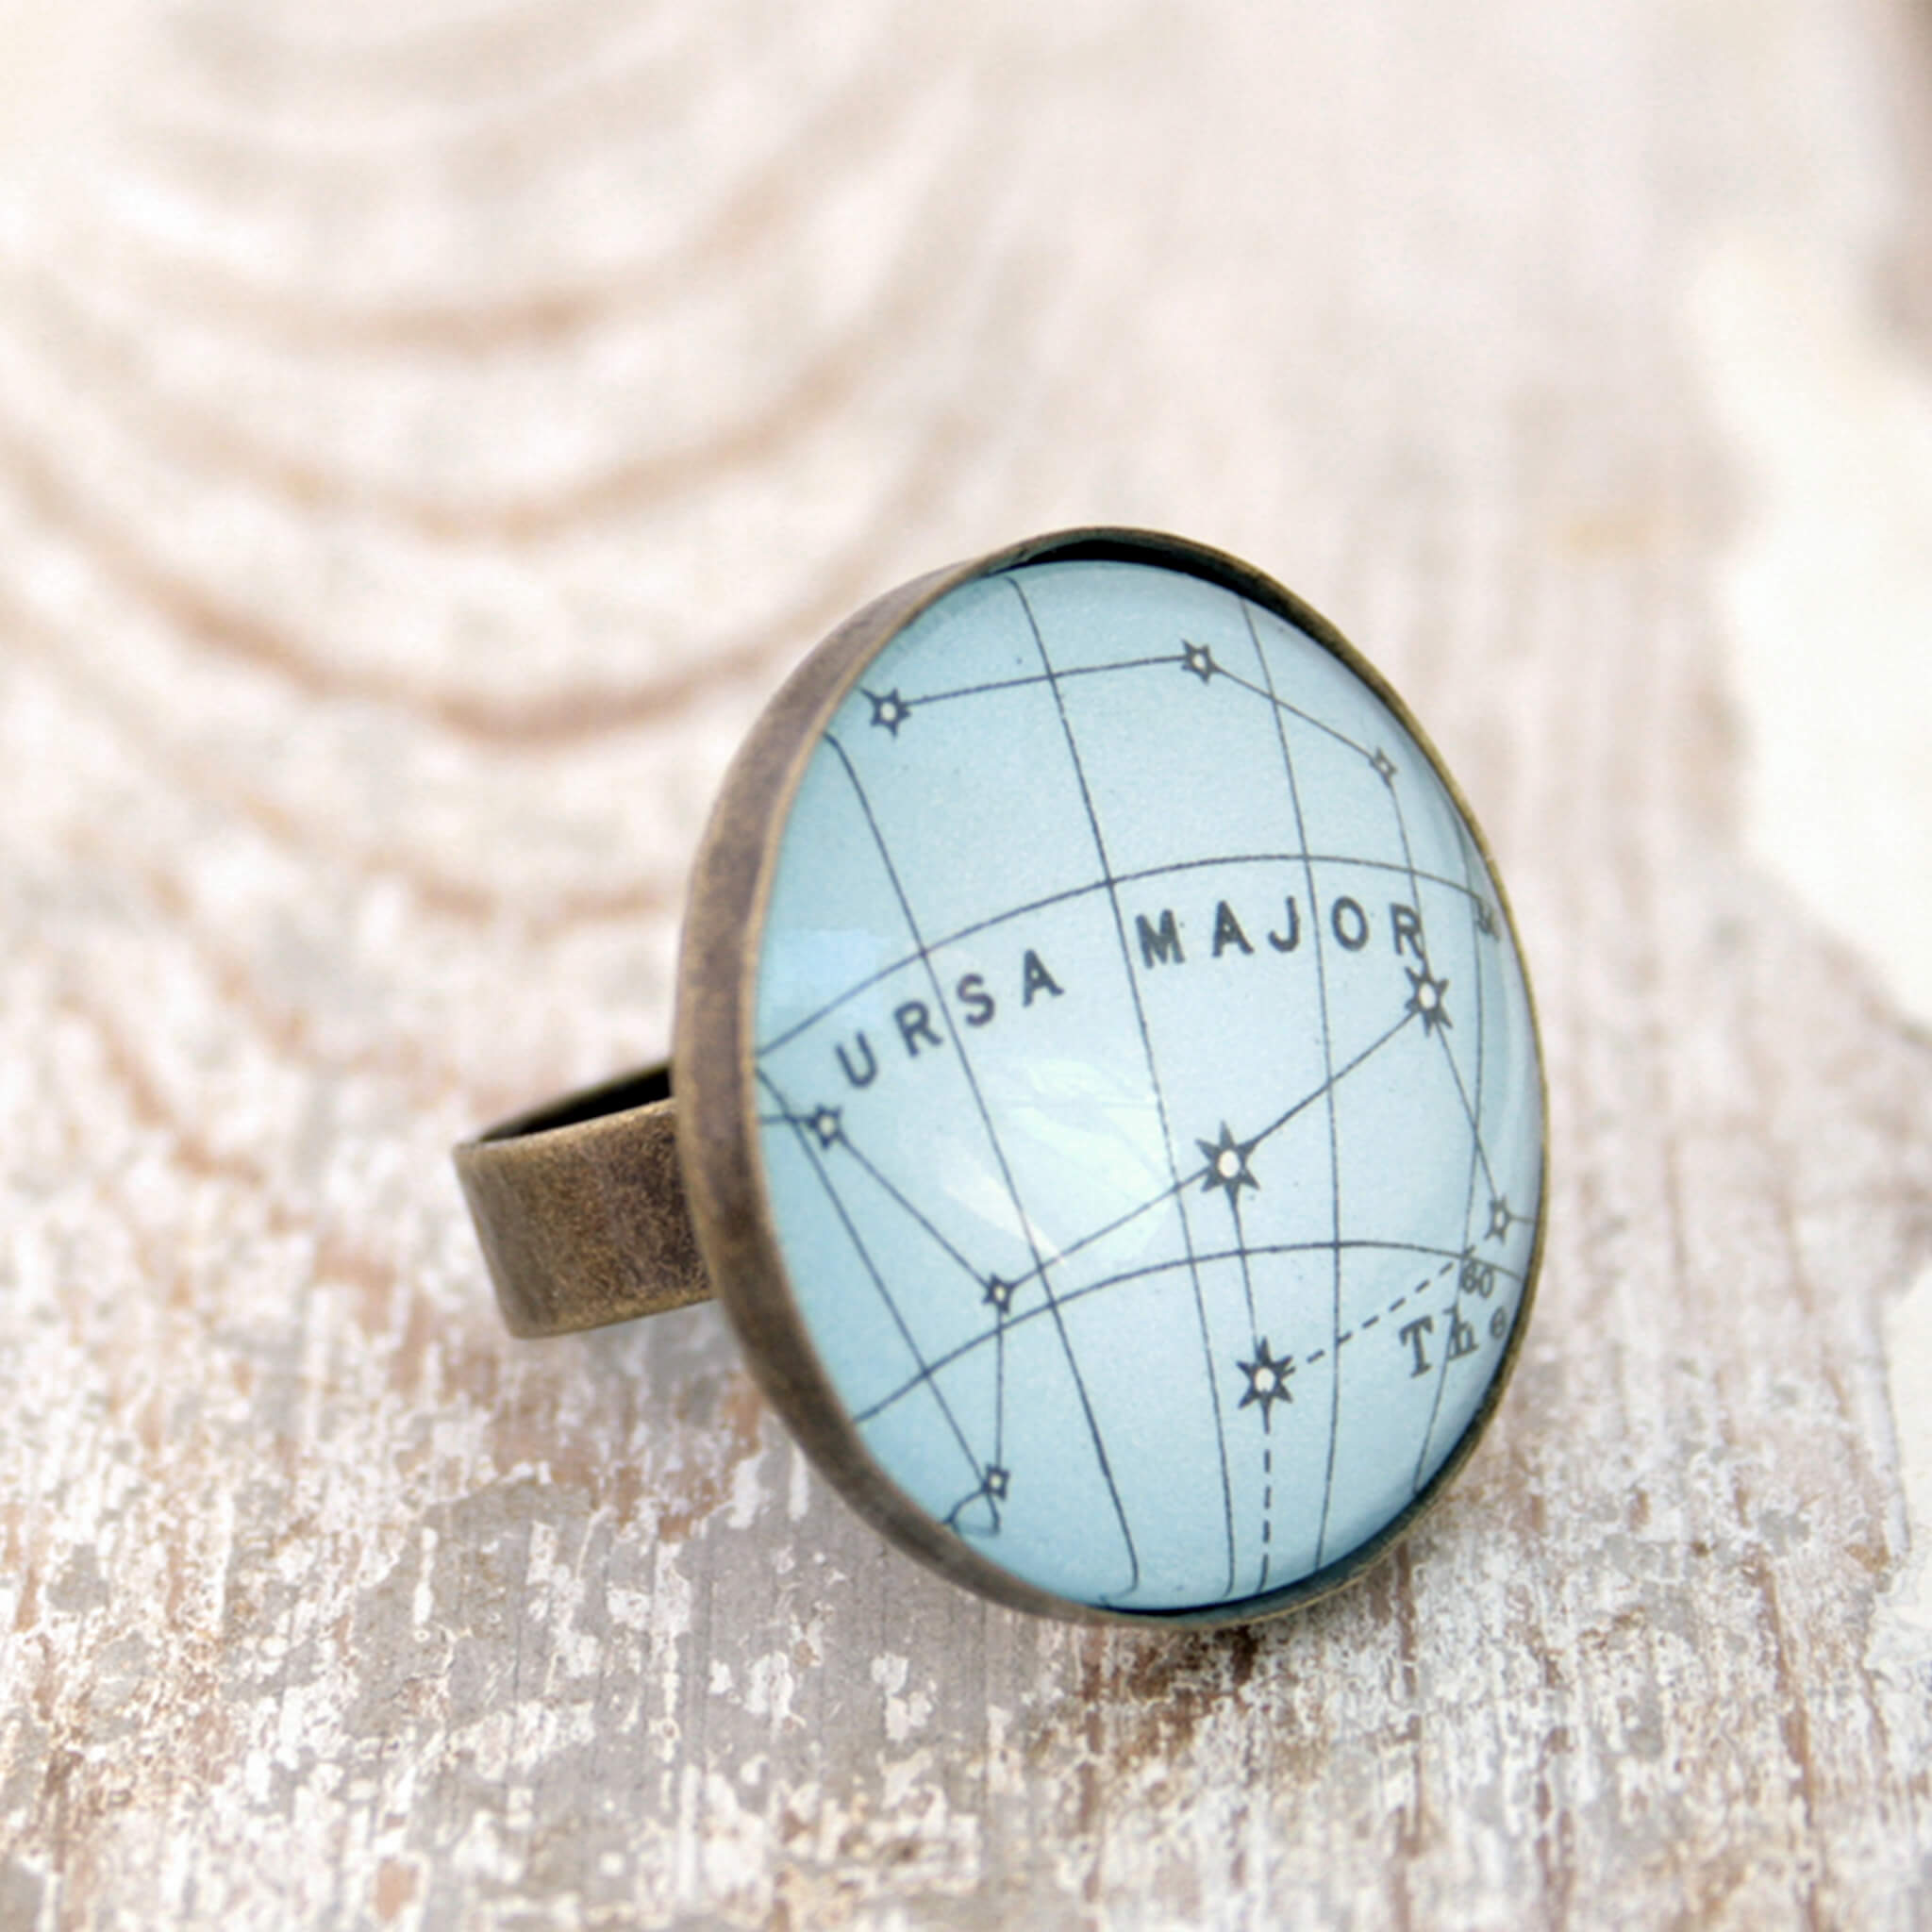 Ursa Major Constellation ring in bronze color